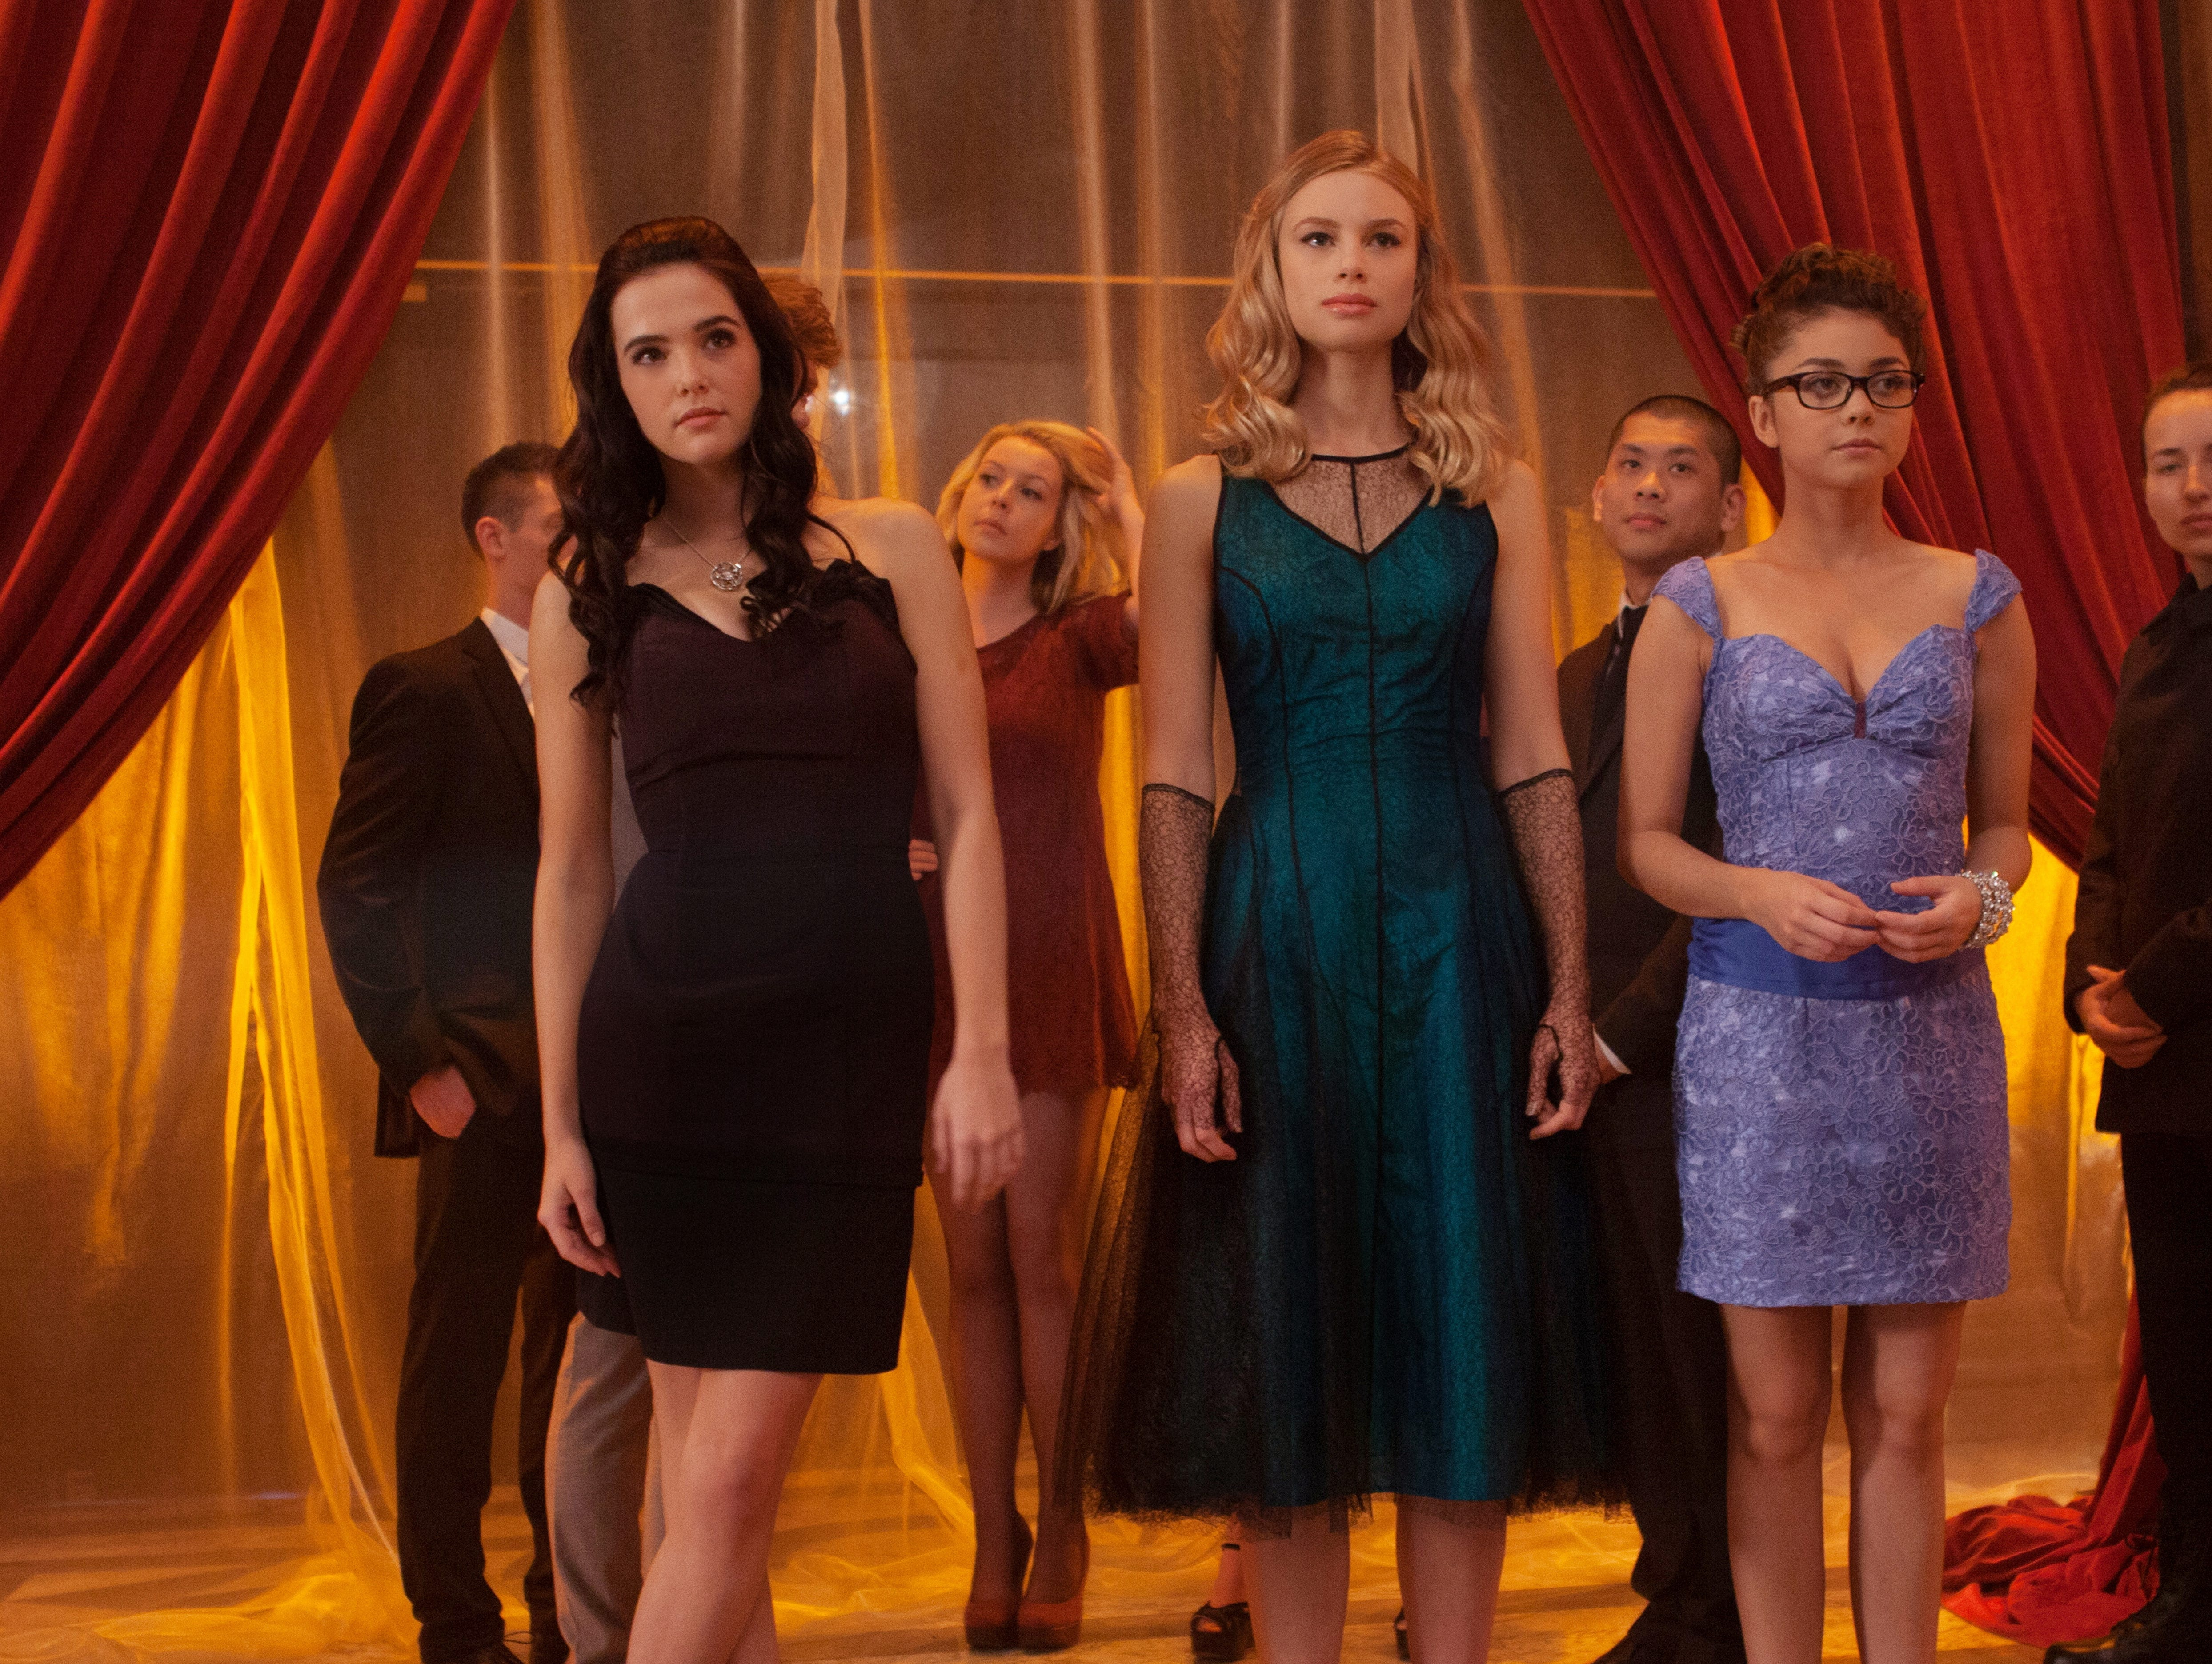 'Vampire Academy' Group Shot